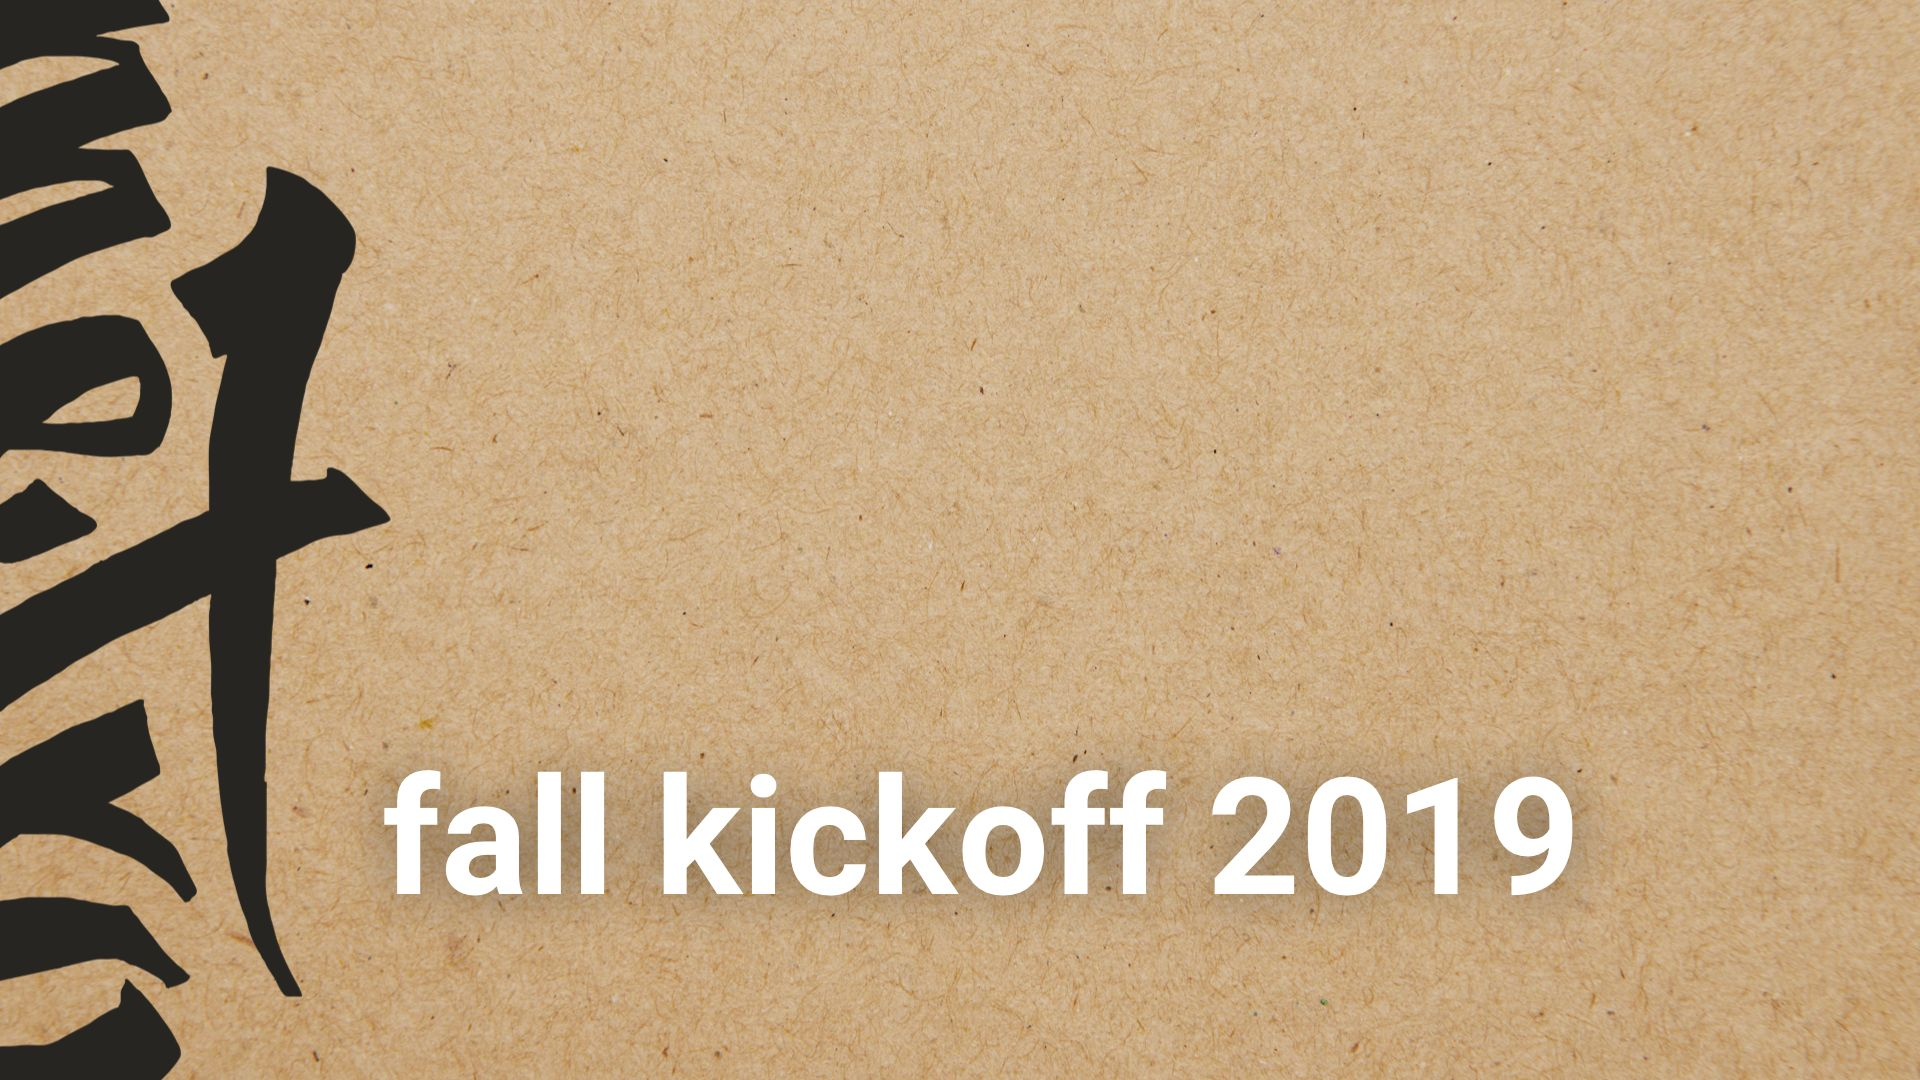 Fall Kickoff 2019 graphic